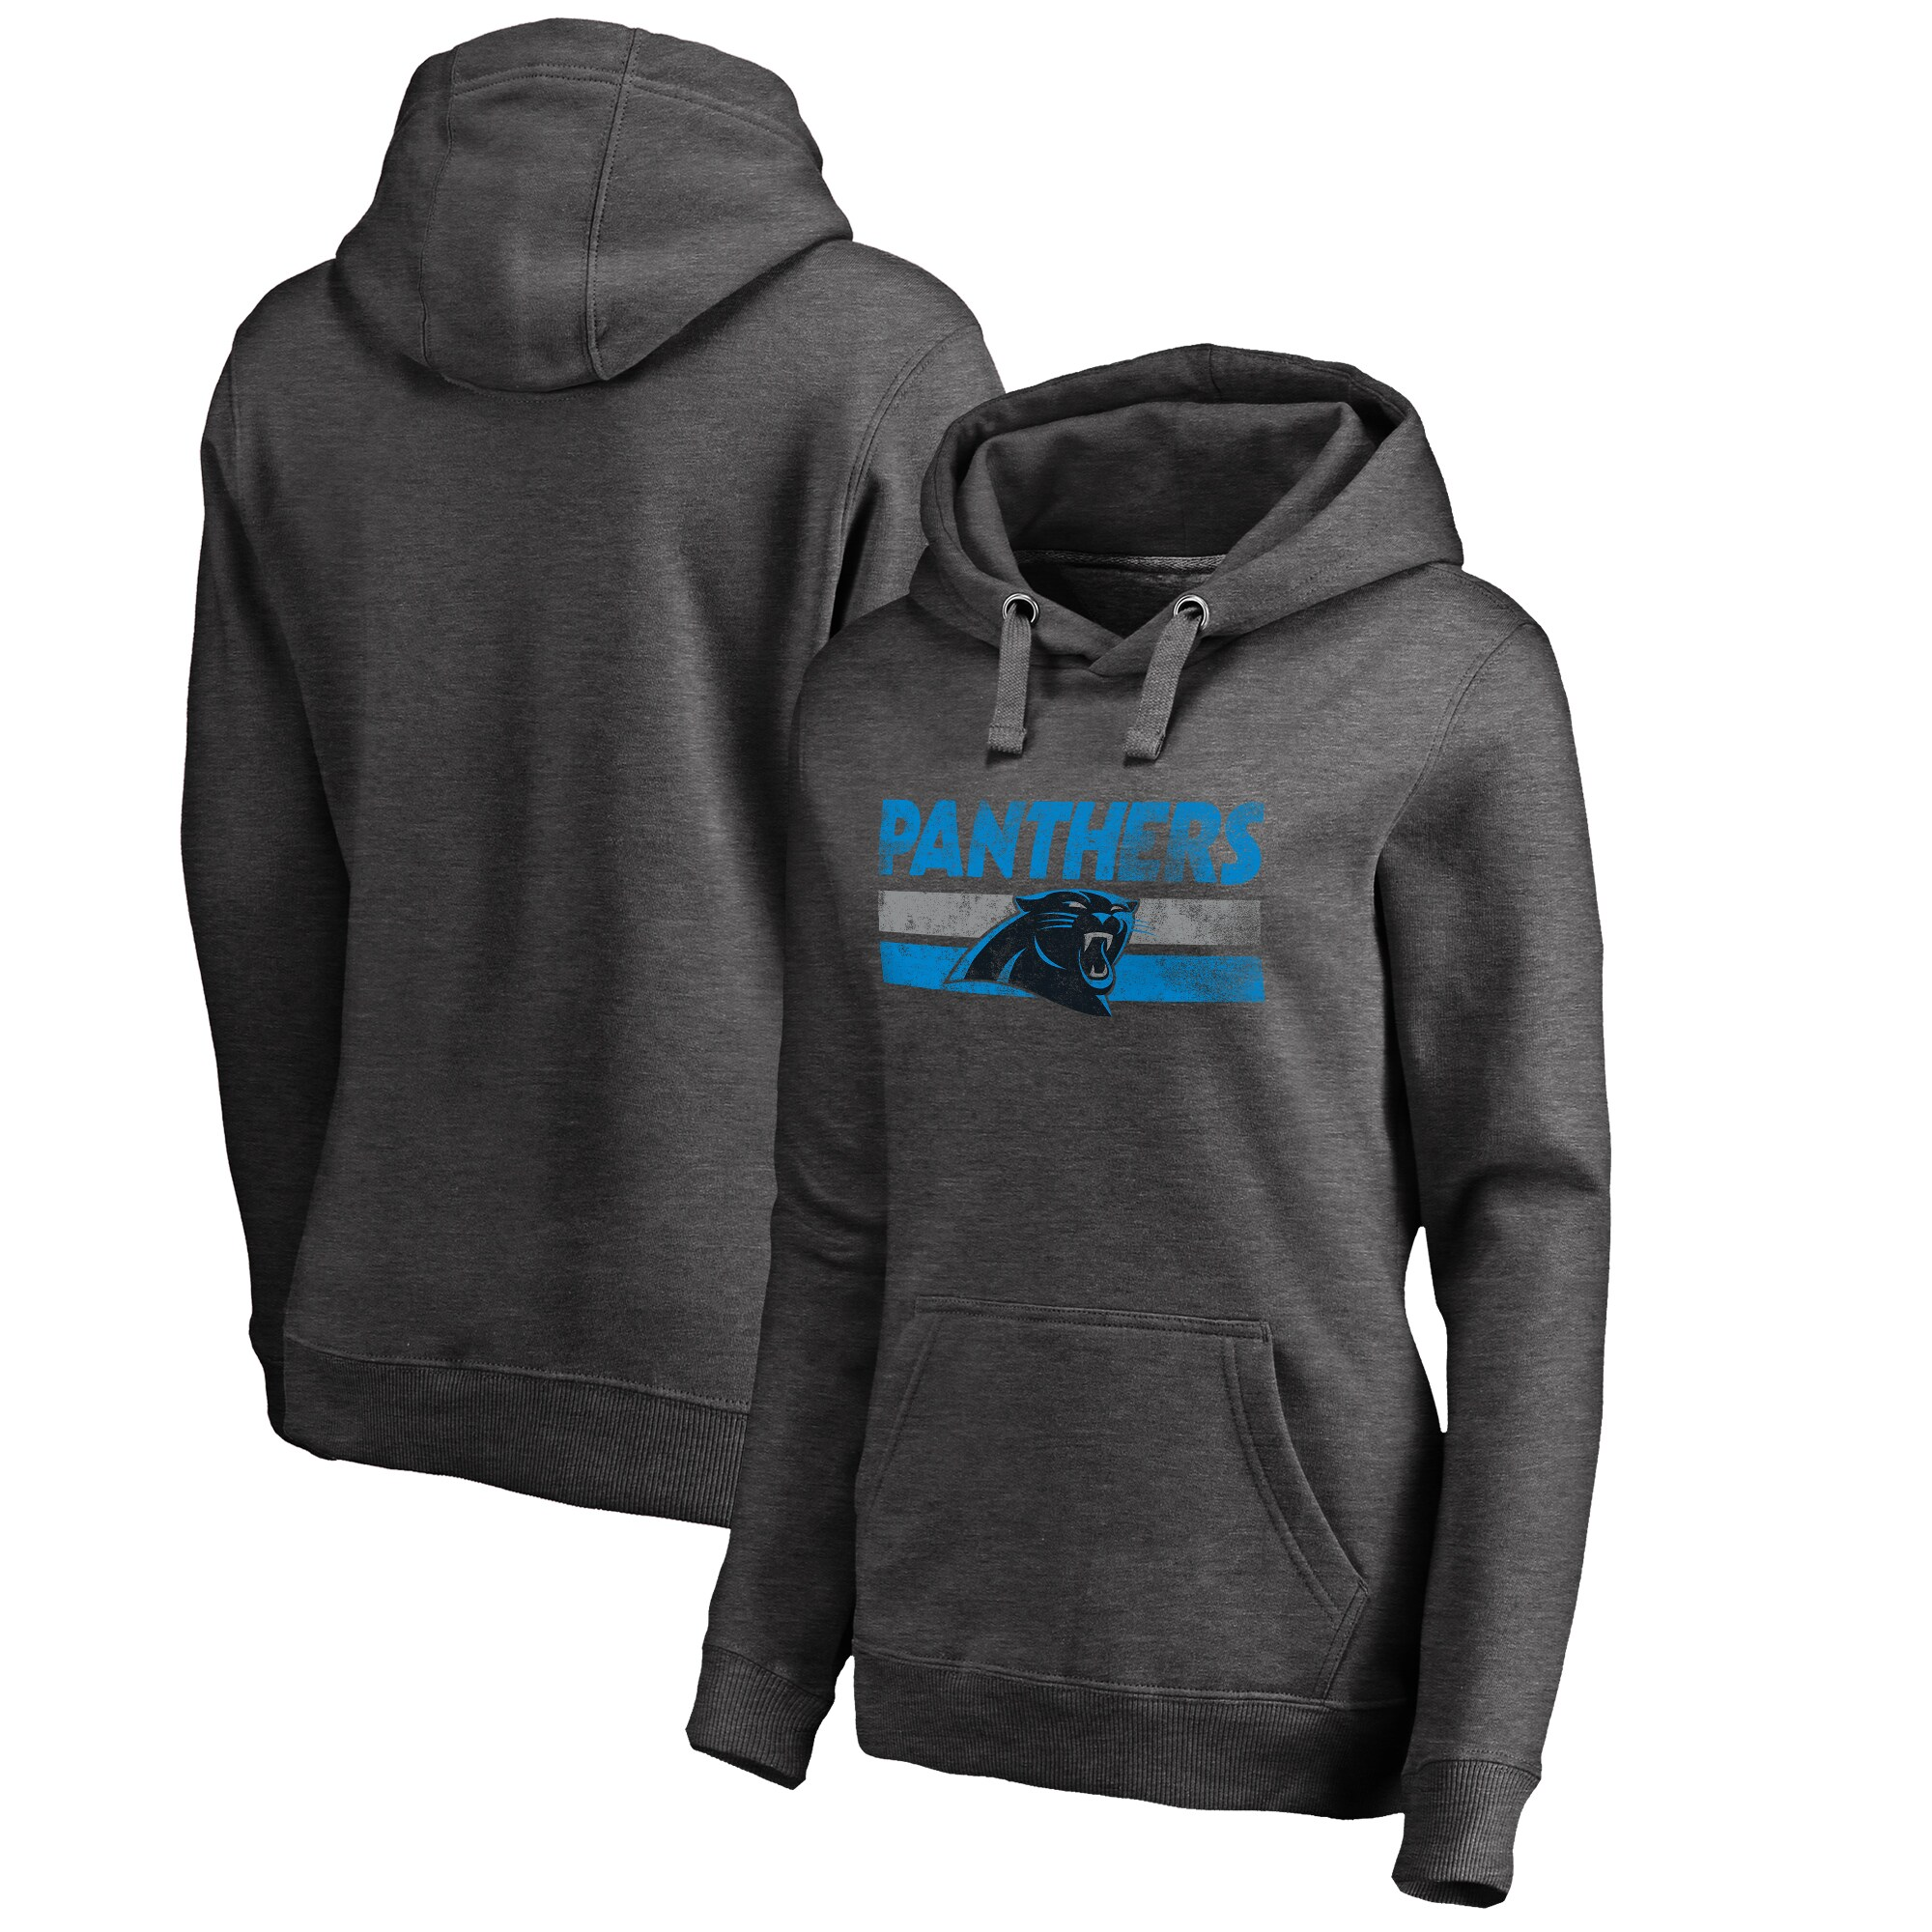 Carolina Panthers NFL Pro Line by Fanatics Branded Women's Plus Sizes First String Pullover Hoodie - Charcoal